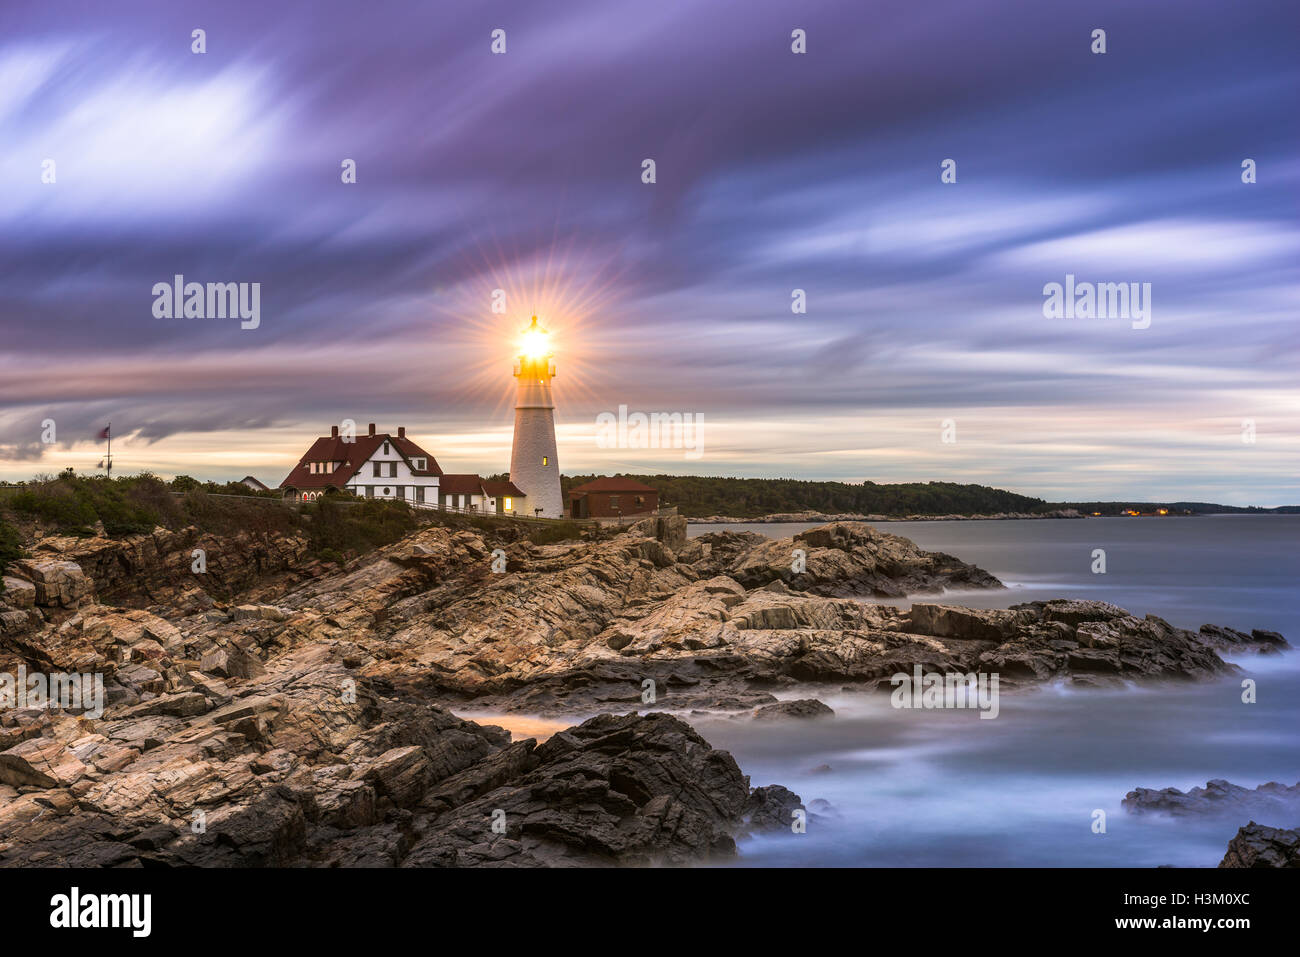 Portland Head Light in Cape Elizabeth, Maine, USA. - Stock Image